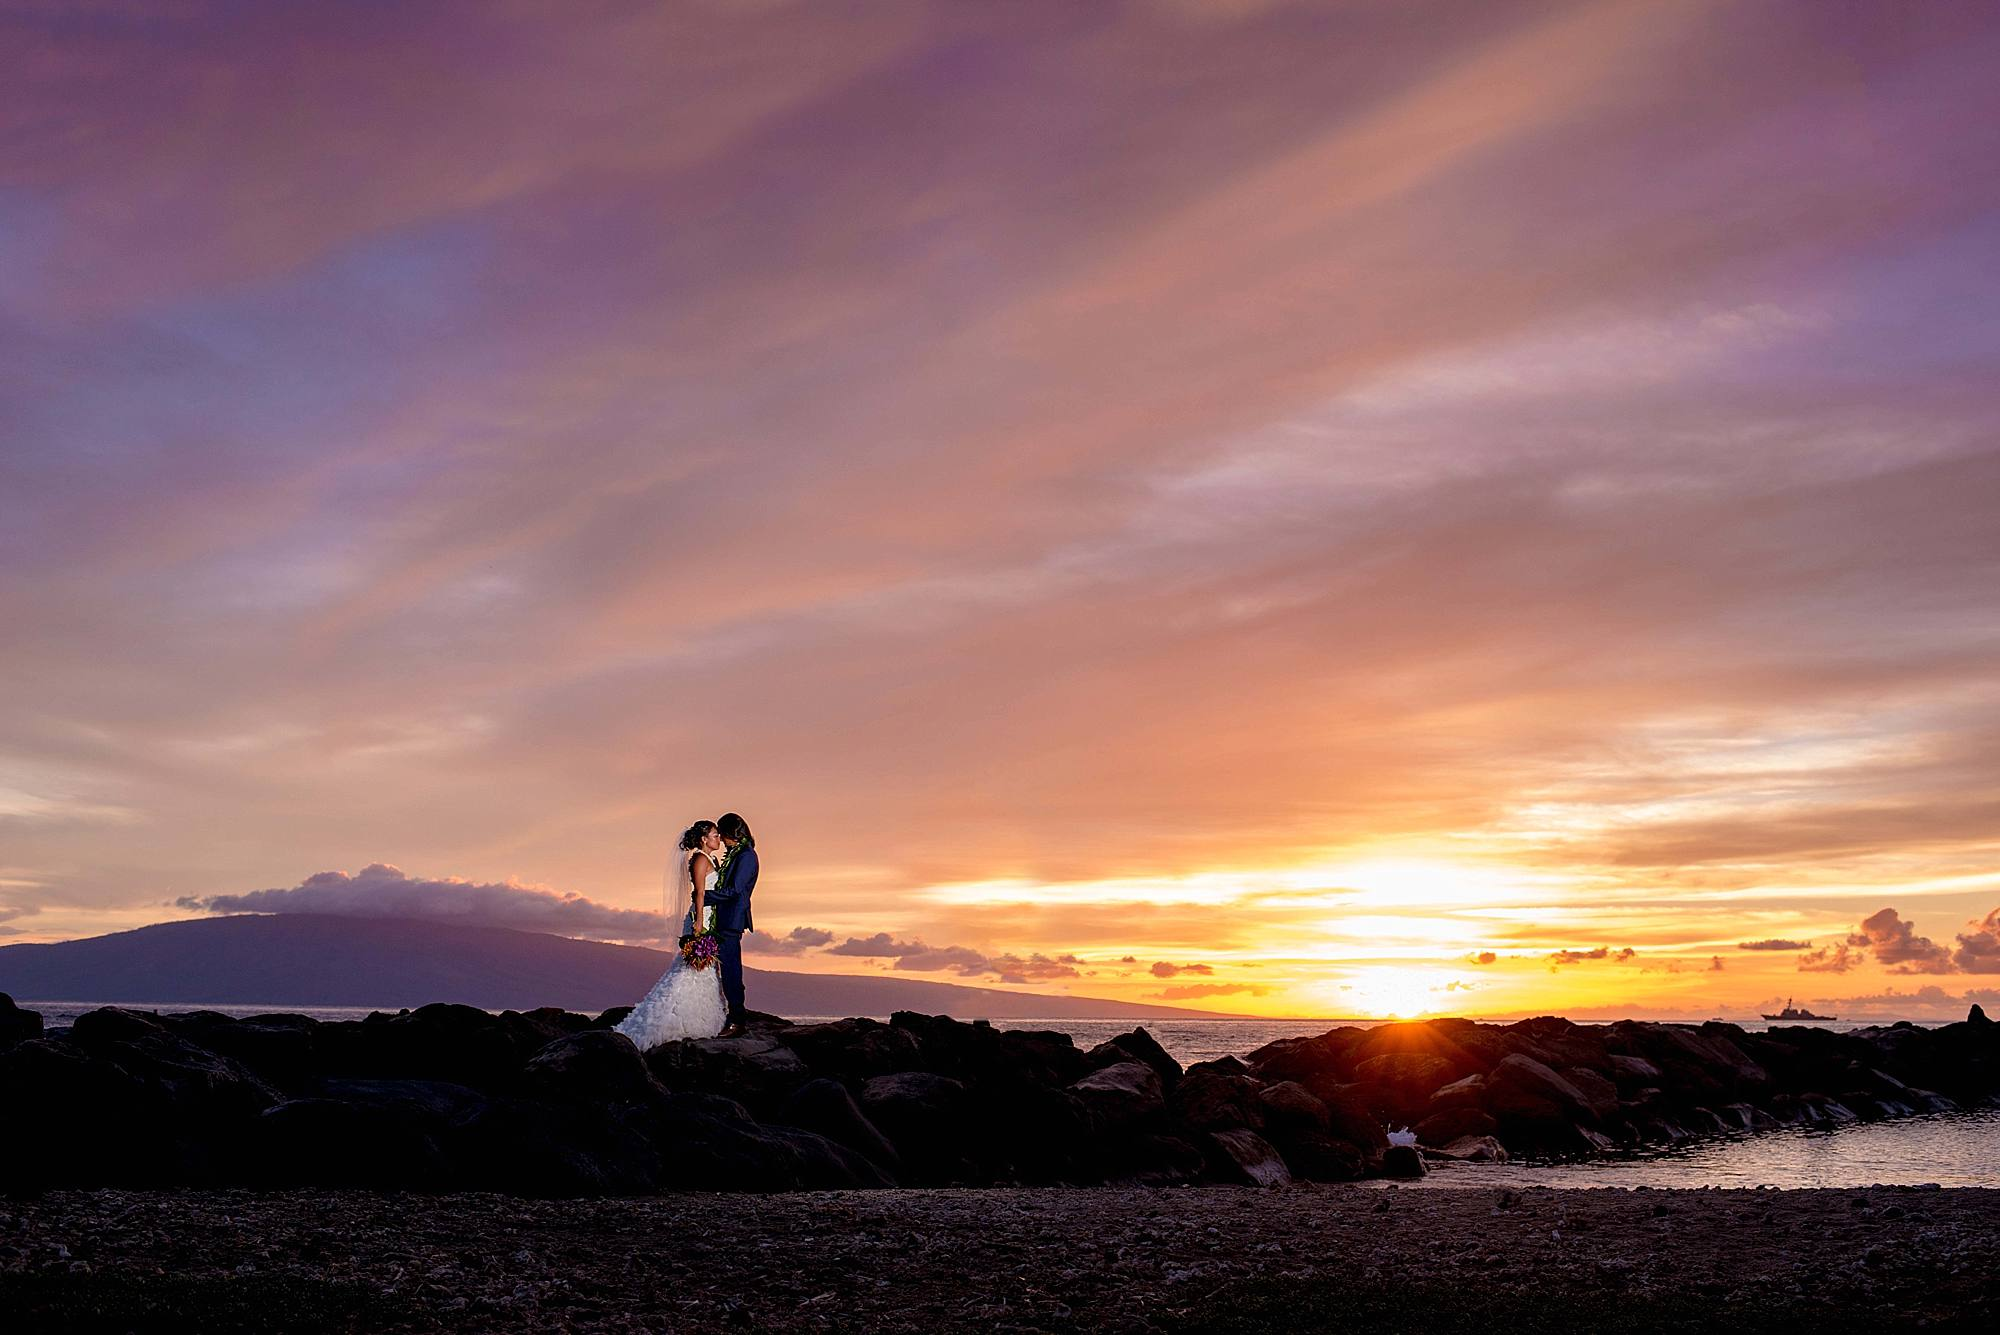 sunset in lahaina, hawaii with bride and groom